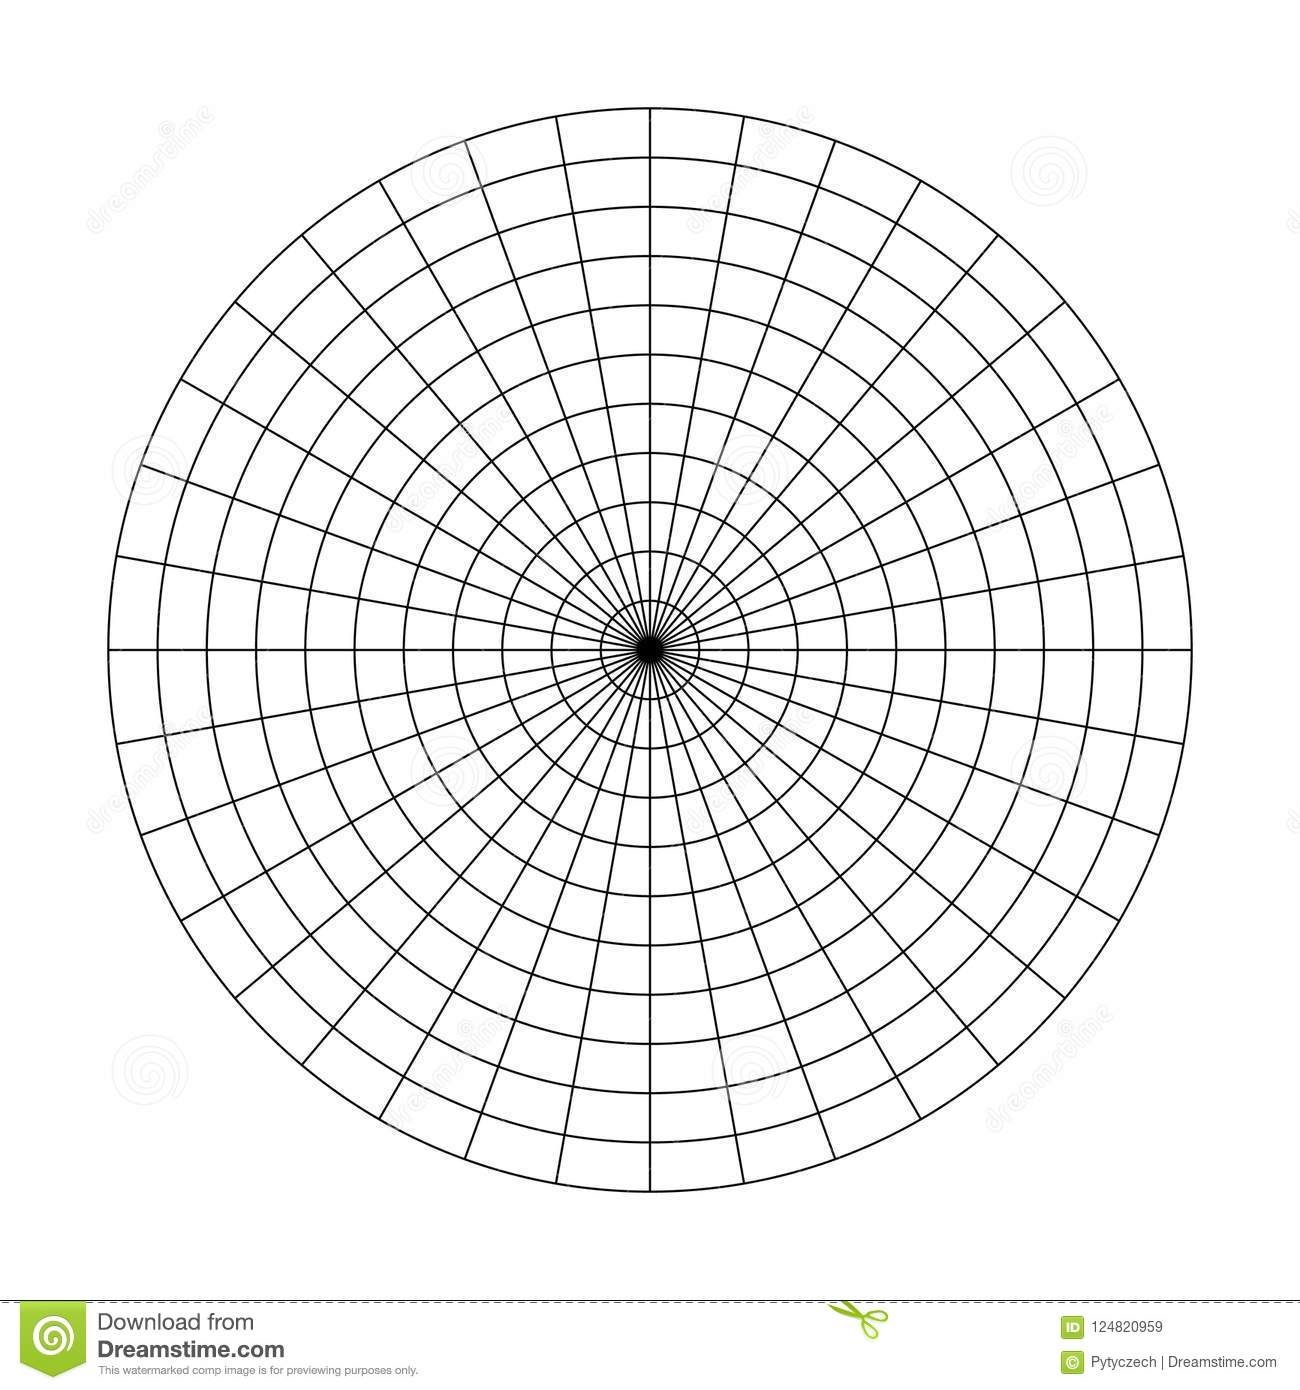 Polar Grid Of 10 Concentric Circles And 10 Degrees Steps